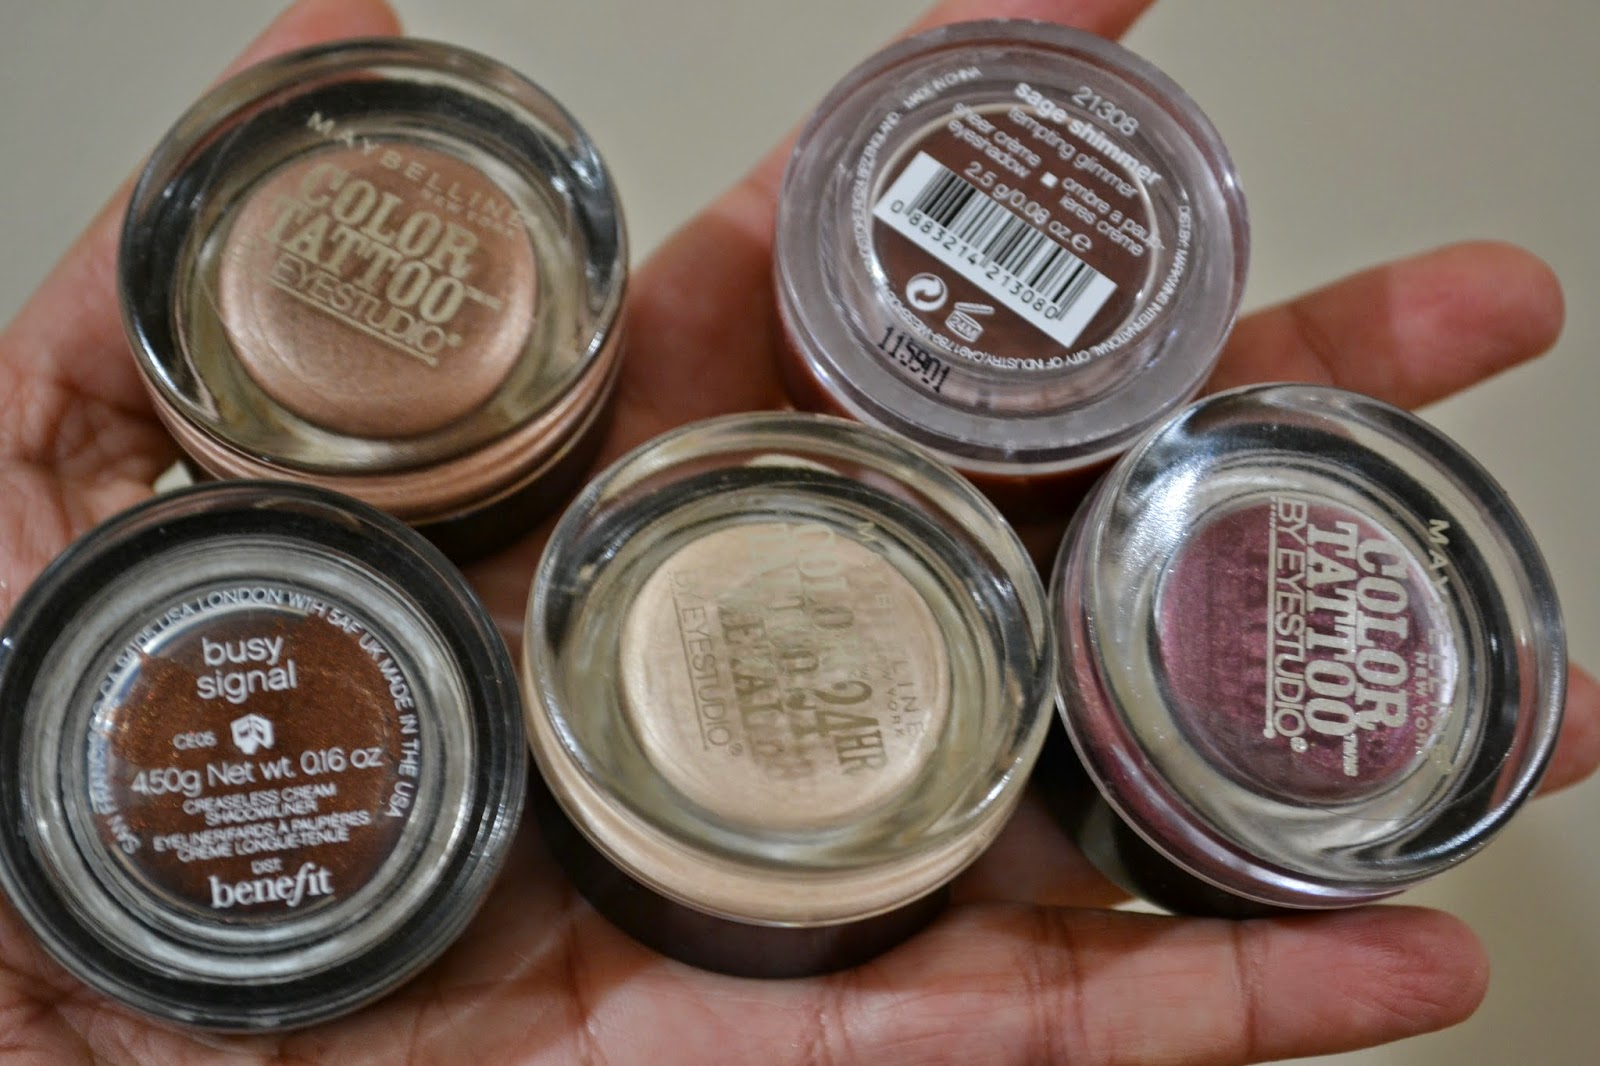 Barely Branded, Bad to the Bronze, CK cream eye shadow in Cashmere Plum, Pomegranate Punk and Benefit's Busy Signal